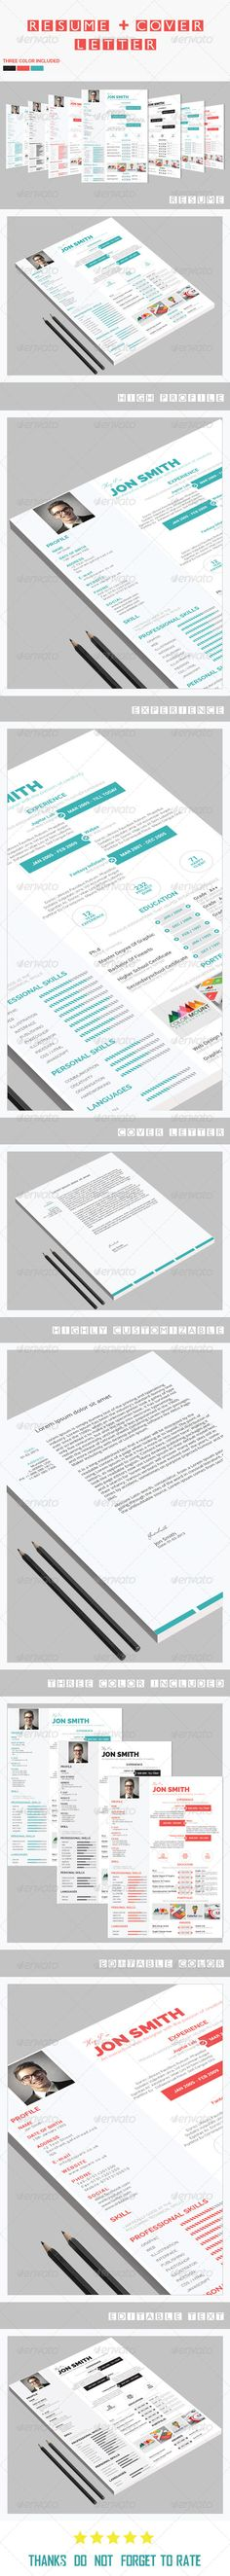 Pretty clean and unique resume layout and resume design overall - unique resume format